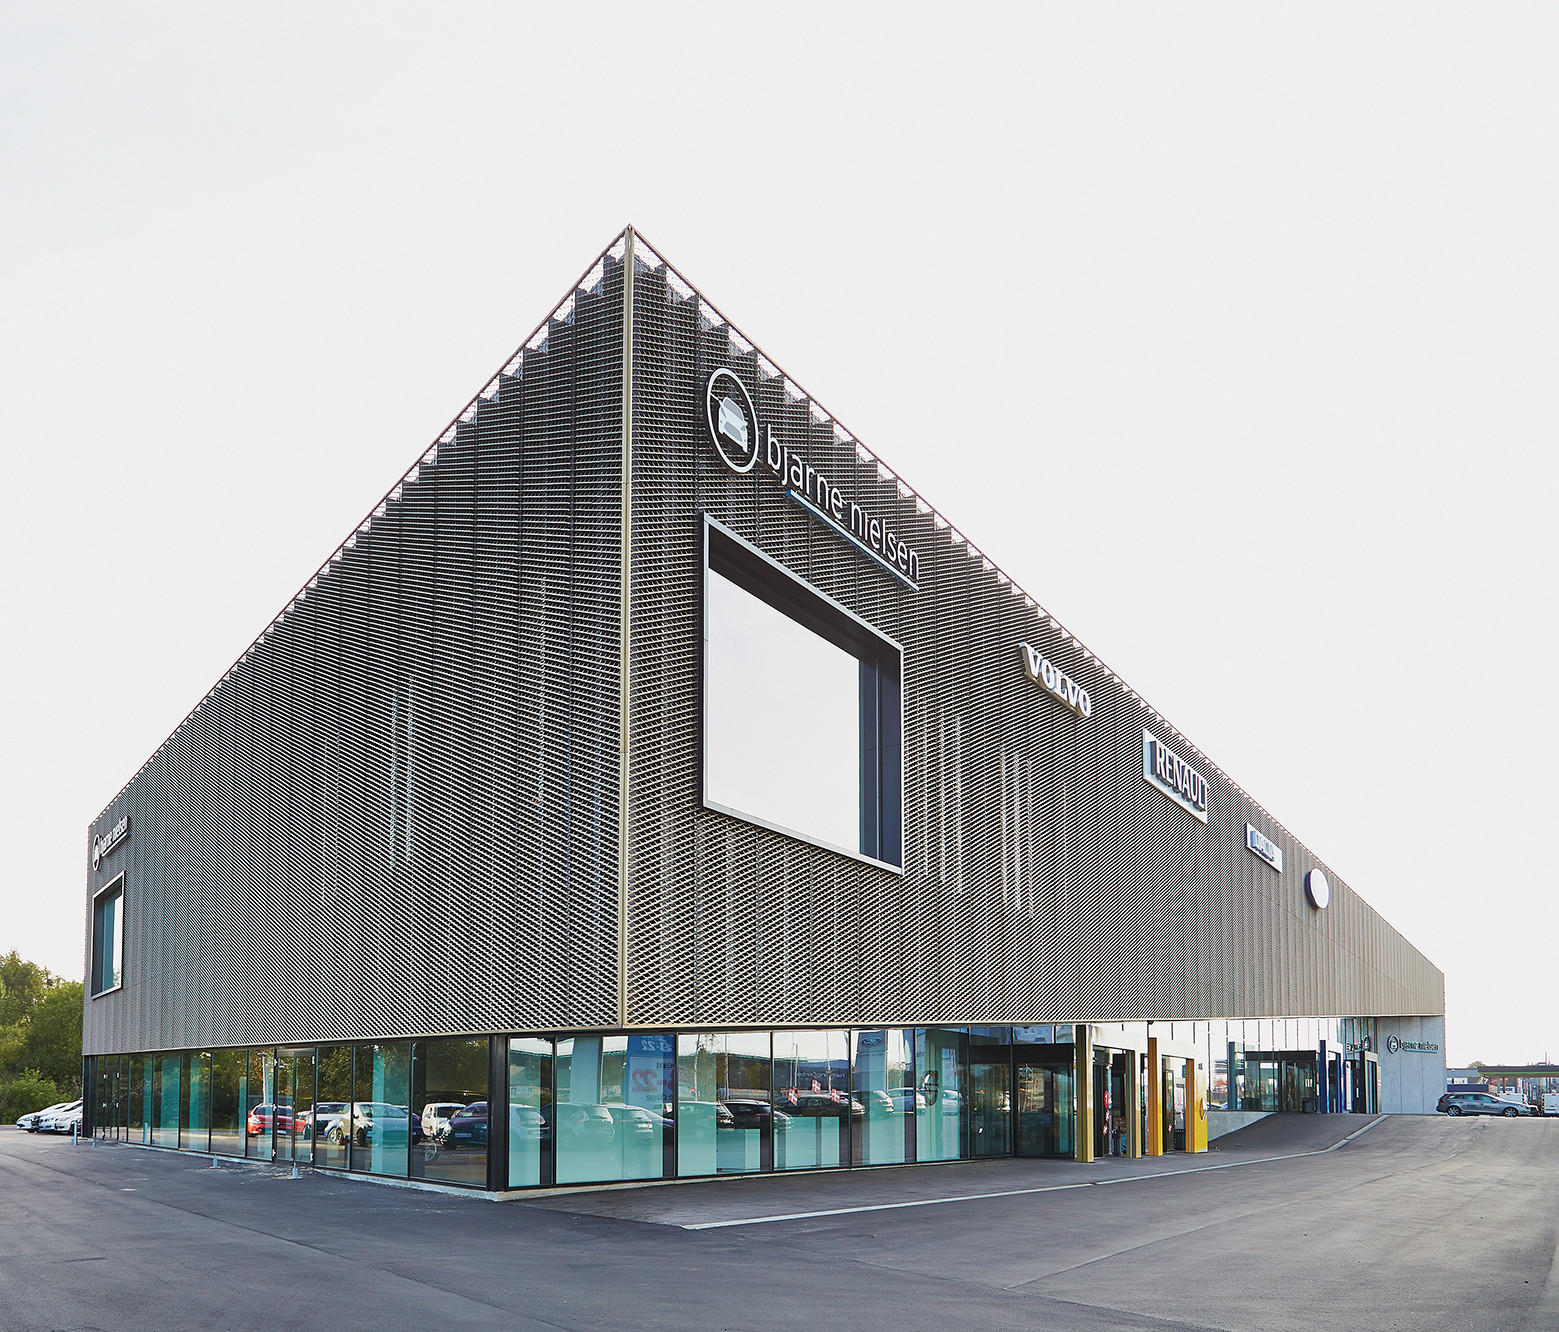 Showroom automotriz en Herning / KRADS, © Tina Stephansen - Studio 55